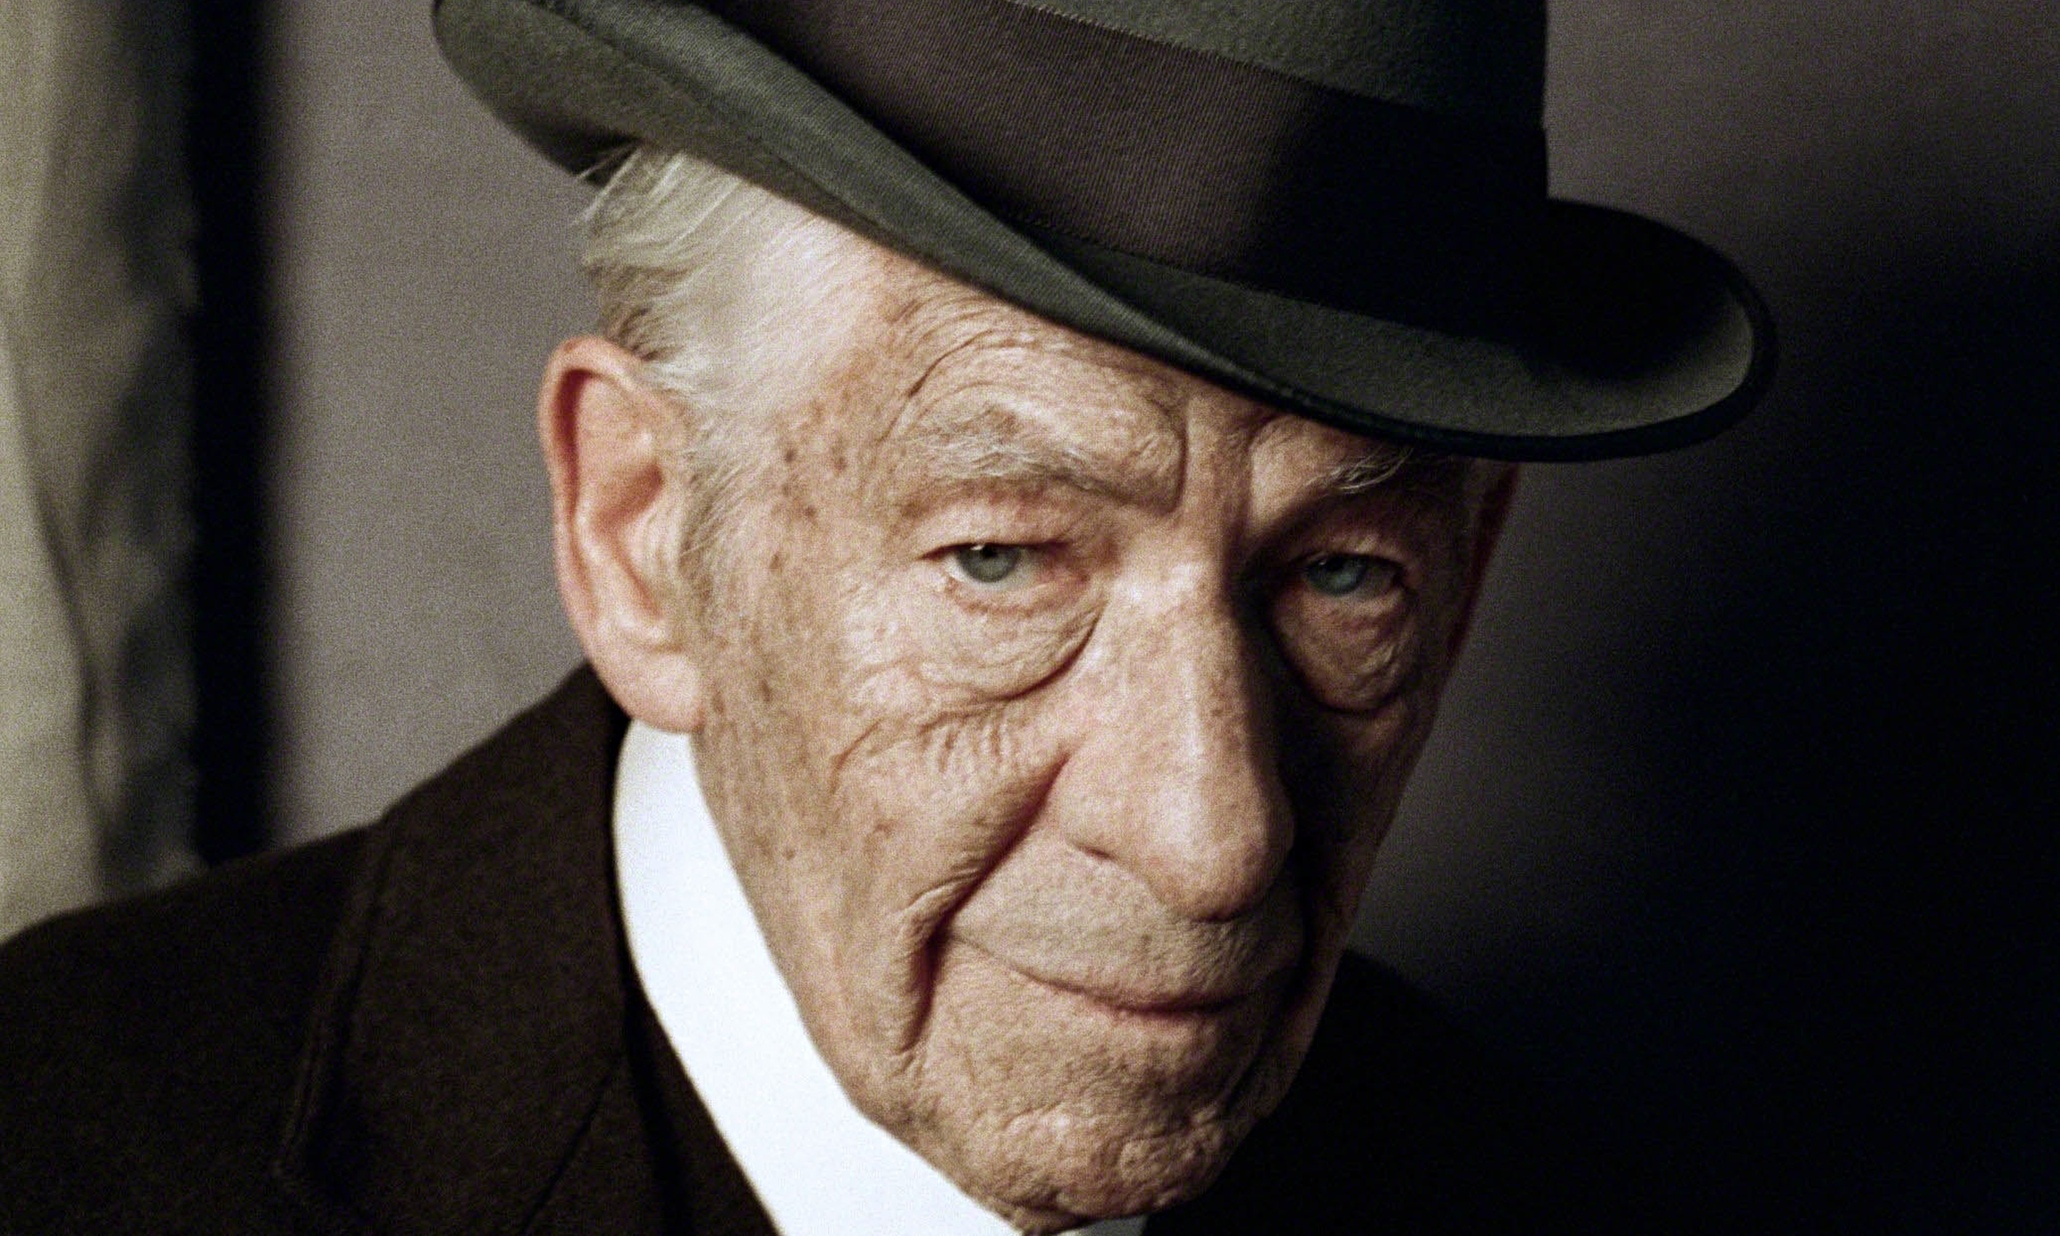 https://kpbs.media.clients.ellingtoncms.com/img/news/tease/2015/07/16/Ian-McKellen-in-Mr-Holmes-009.jpg